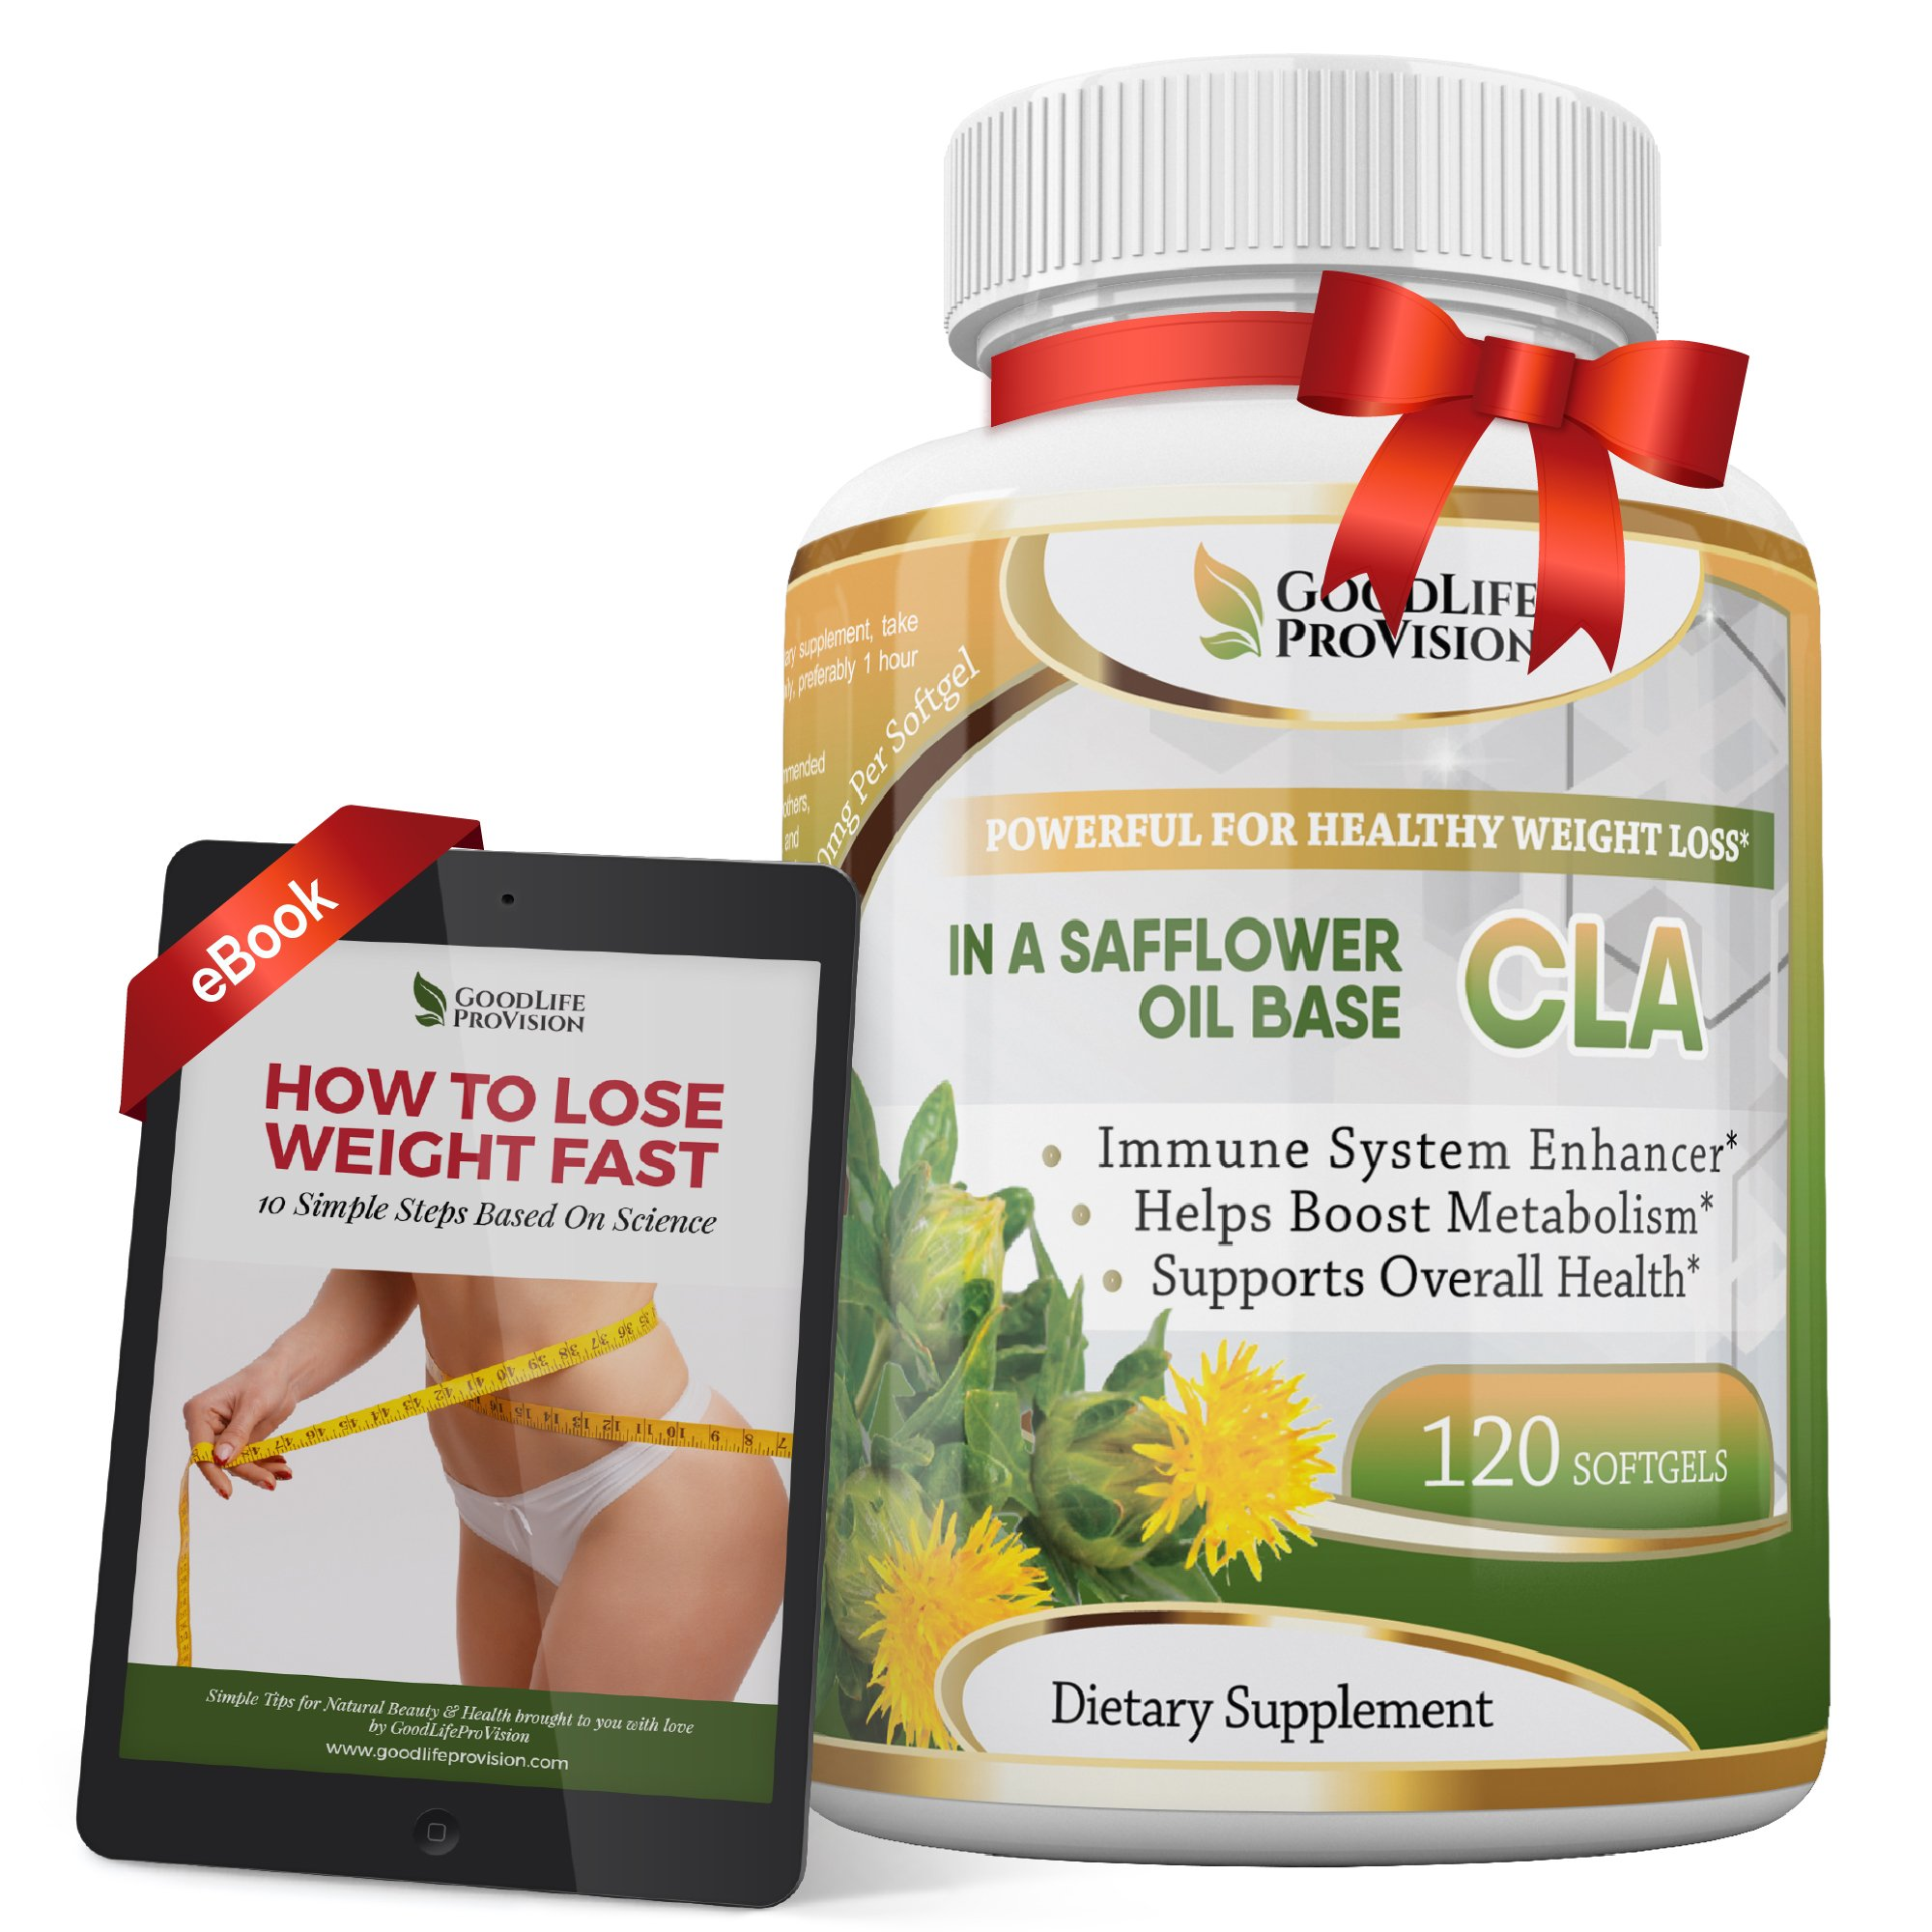 Best Pure CLA 1250 mg in a Safflower Oil Base Supplement, Conjugated Linoleic Acid - Helps Boost Metabolism and Strong Immunity - 120 Weight Loss Softgels